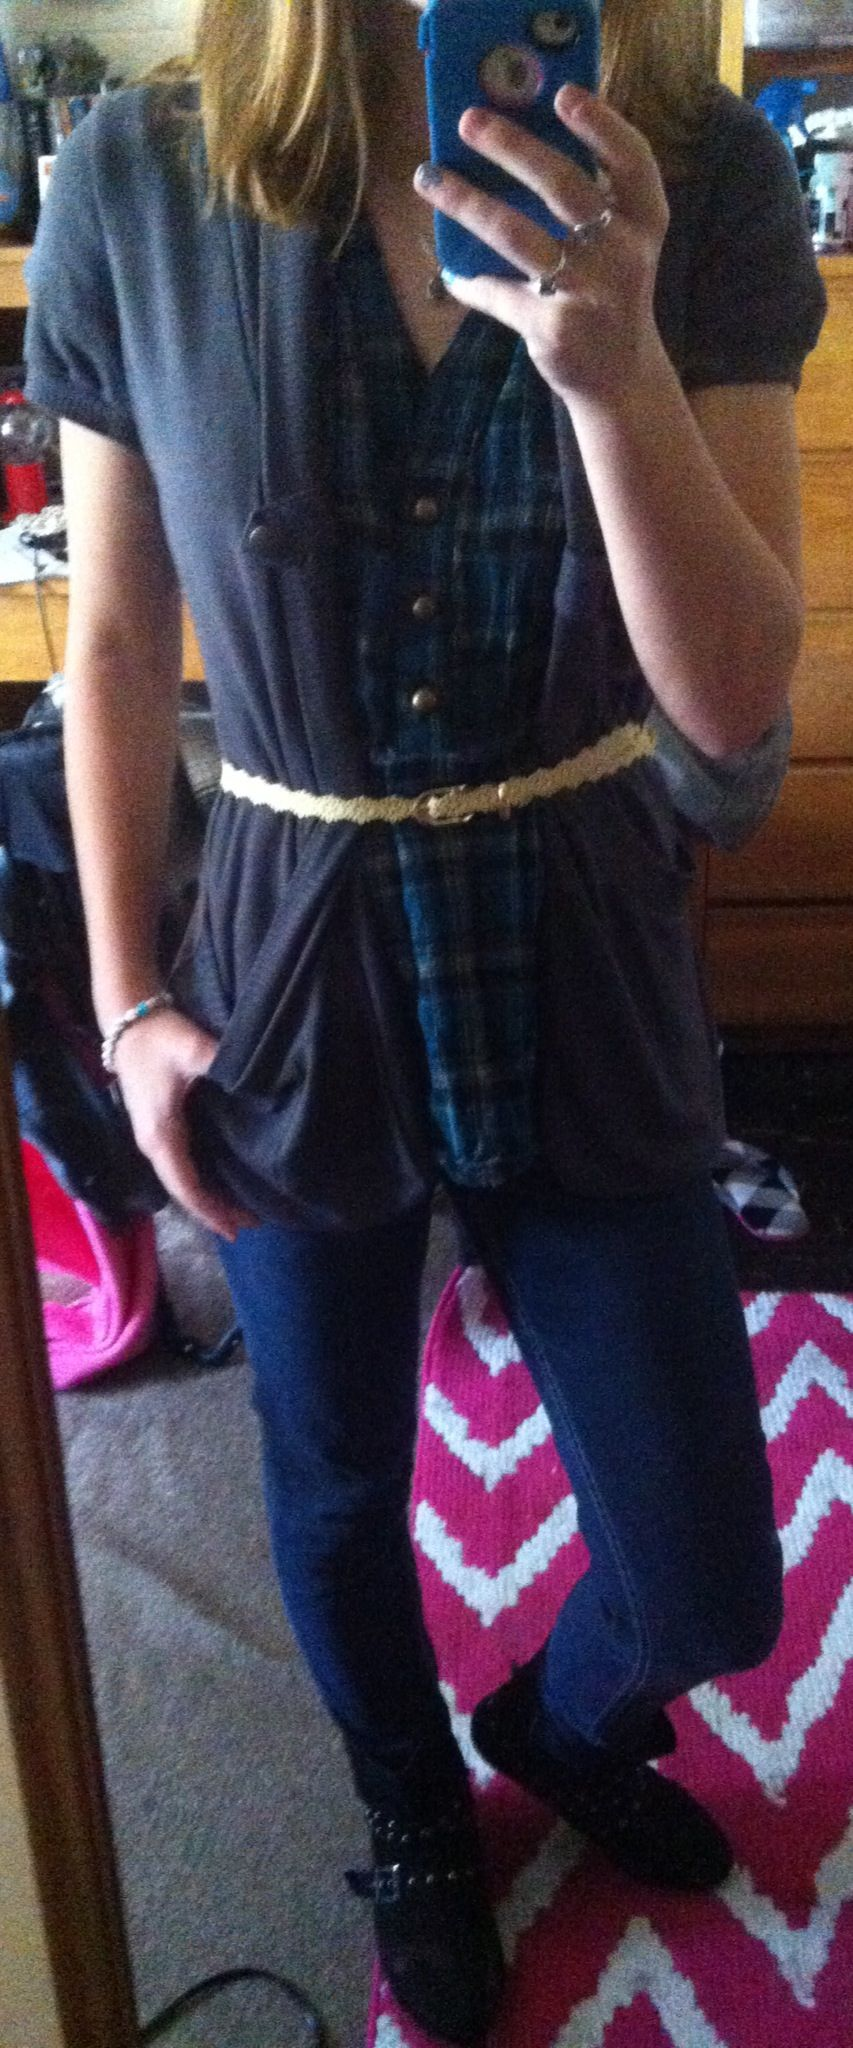 Plaid, grey cover, skinny jeans, colored belt, boots